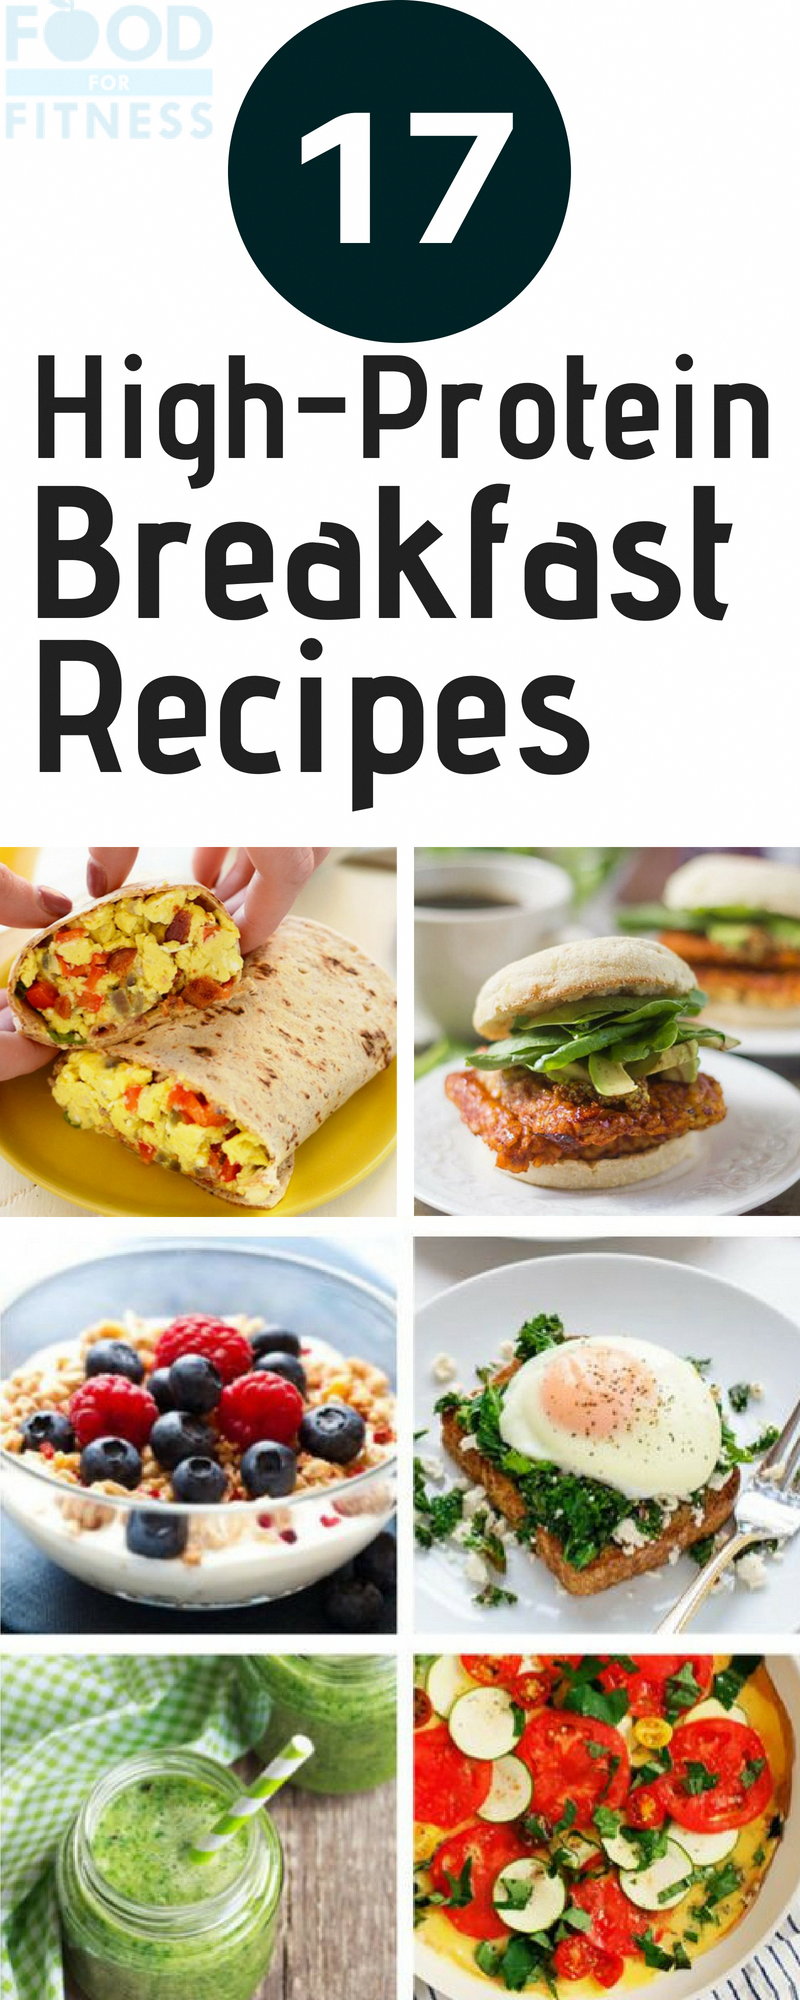 17 High-Protein Breakfast Recipes to Help You Power Through the Day.